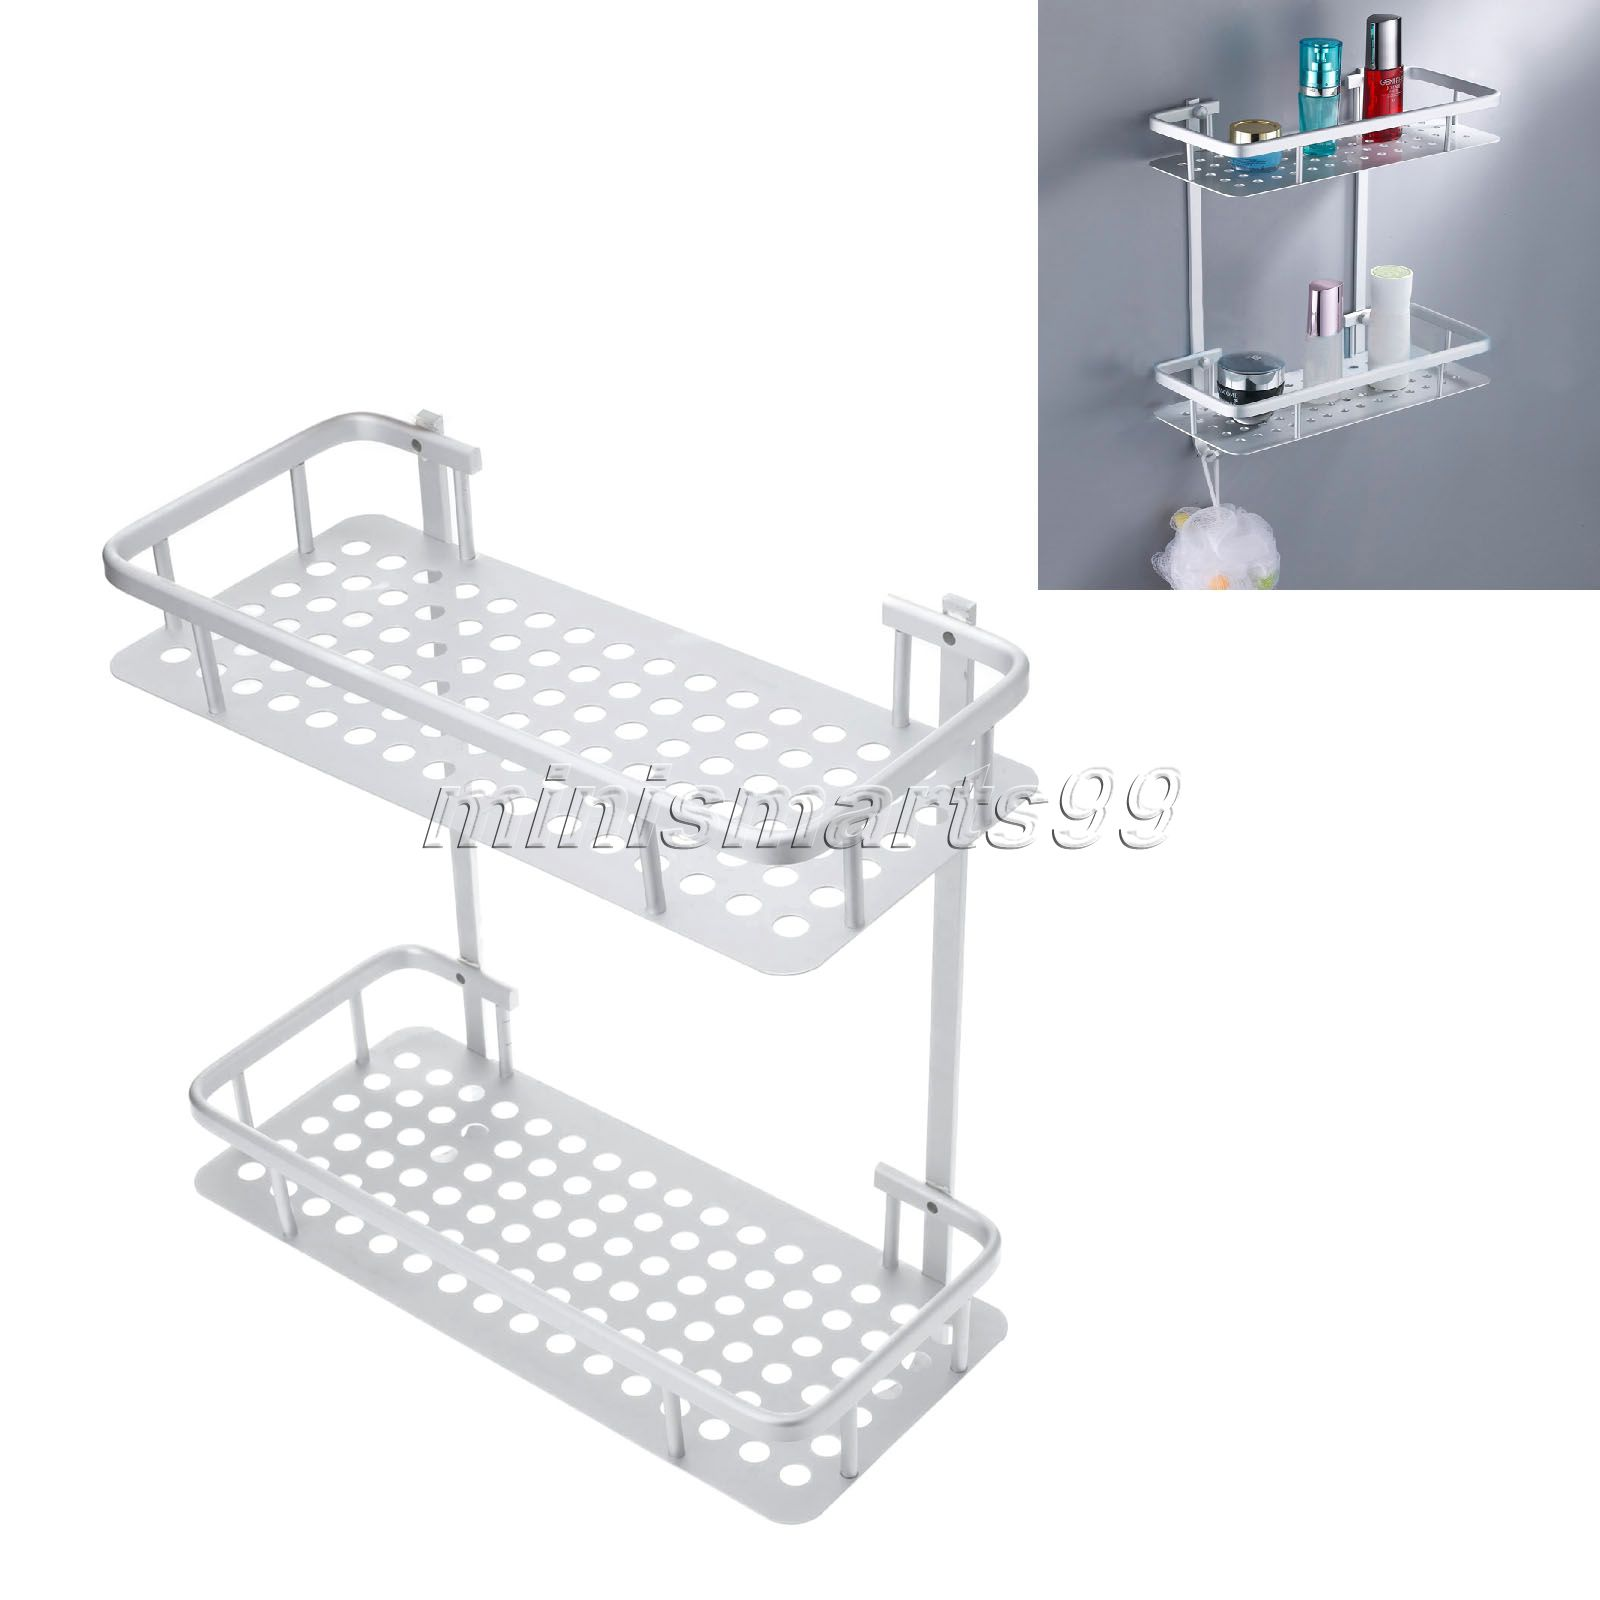 Plastic removable bath shelf wall mounted cosmetic holder storage - Aluminum Double Wall Corner Shower Shampoo Soap Cosmetic Storage Shelf Bathroom Shelves W Hacks Towel